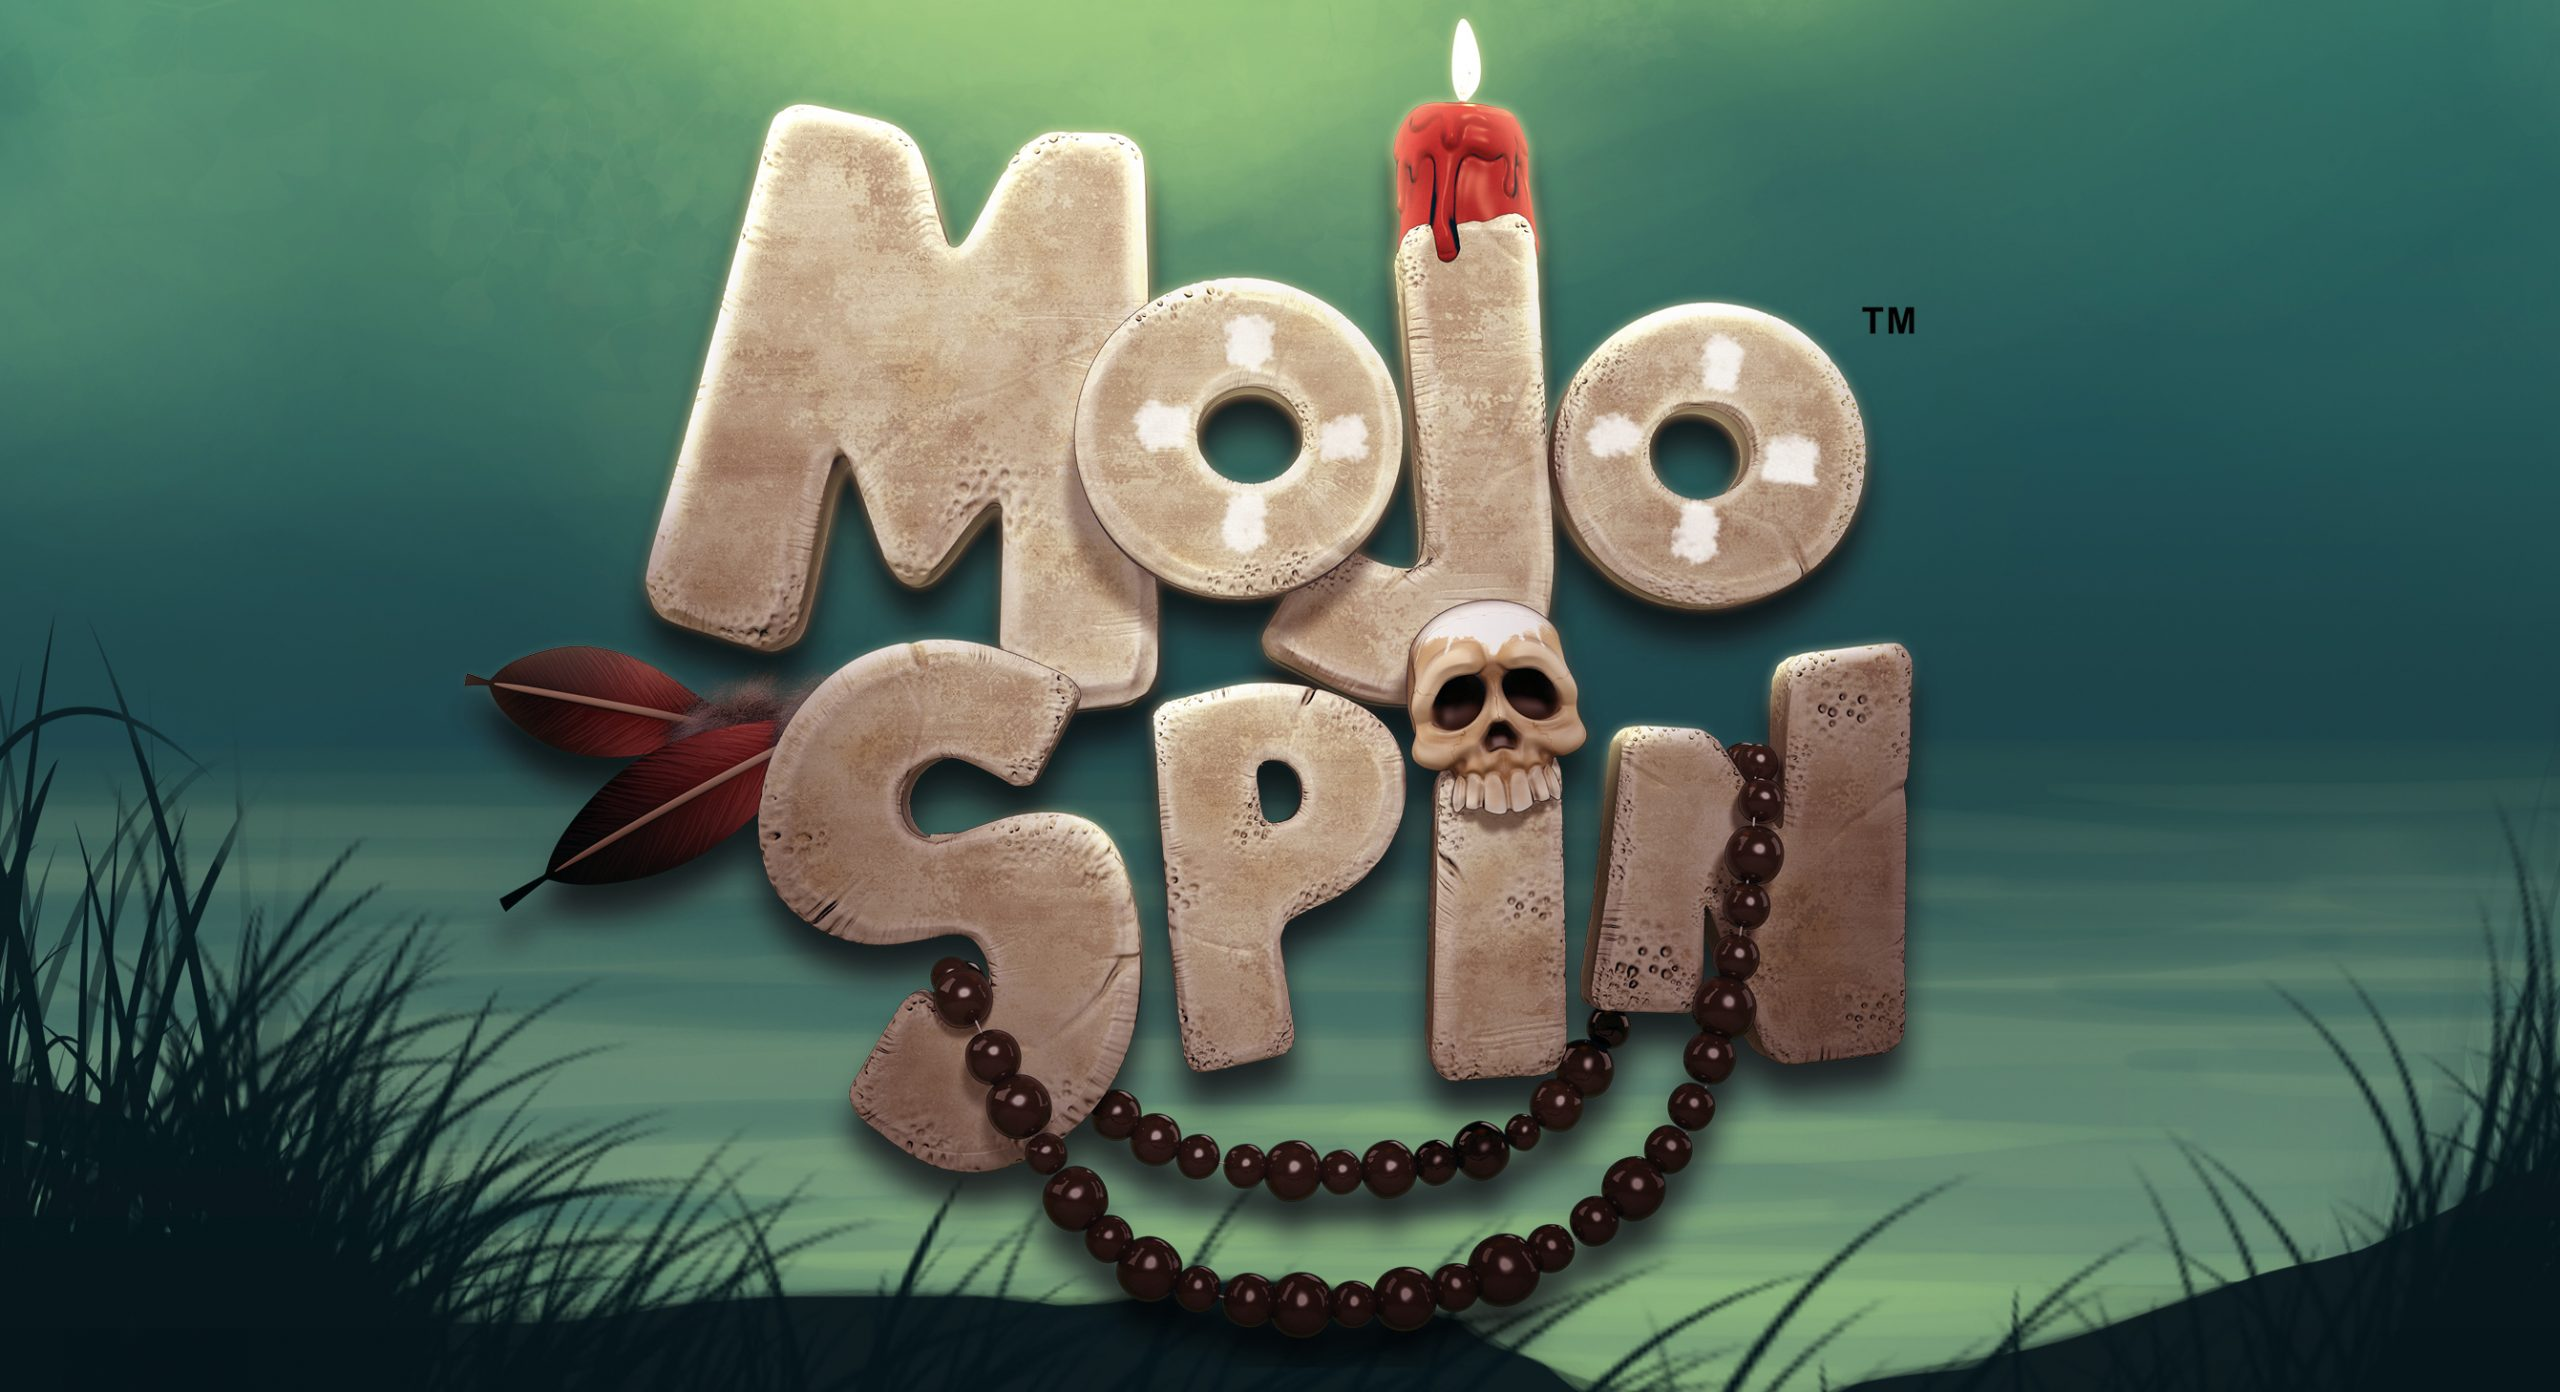 The Mojo Spin Dice Slot is a creepy one - filled with bones & posions you should try to get your mojo on on betFIRST Casino